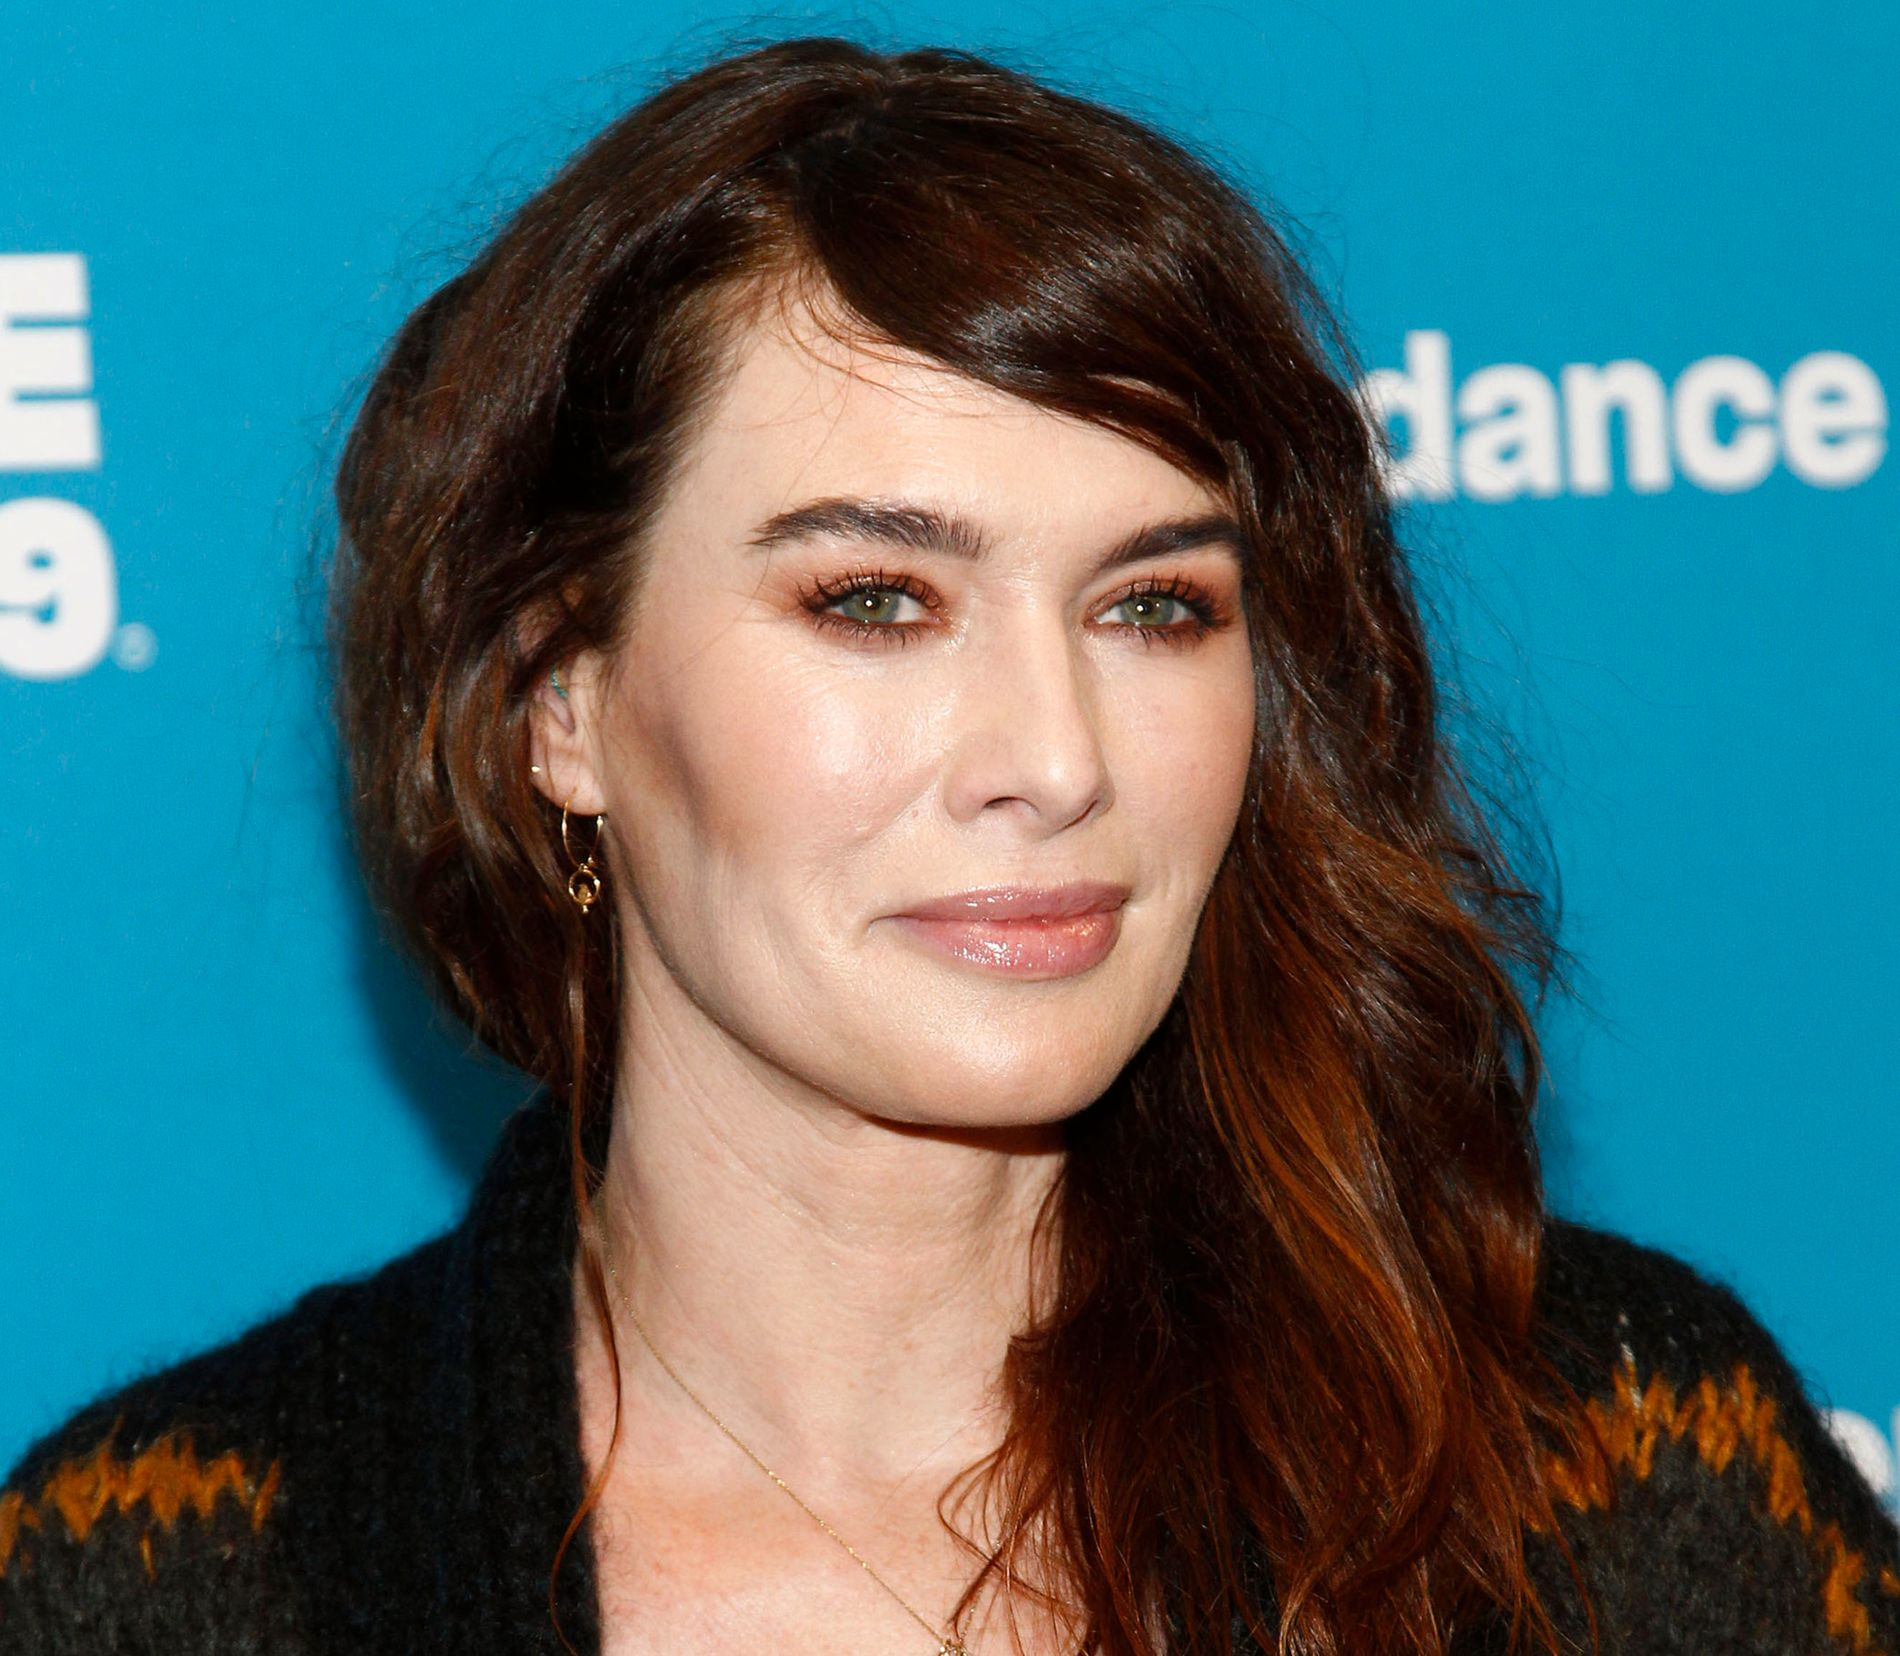 PÅ FESTIVAL: Lena Headey på Sunddance i Utah i januar, der hun promoterte sin nye film «Fighting With My Family».